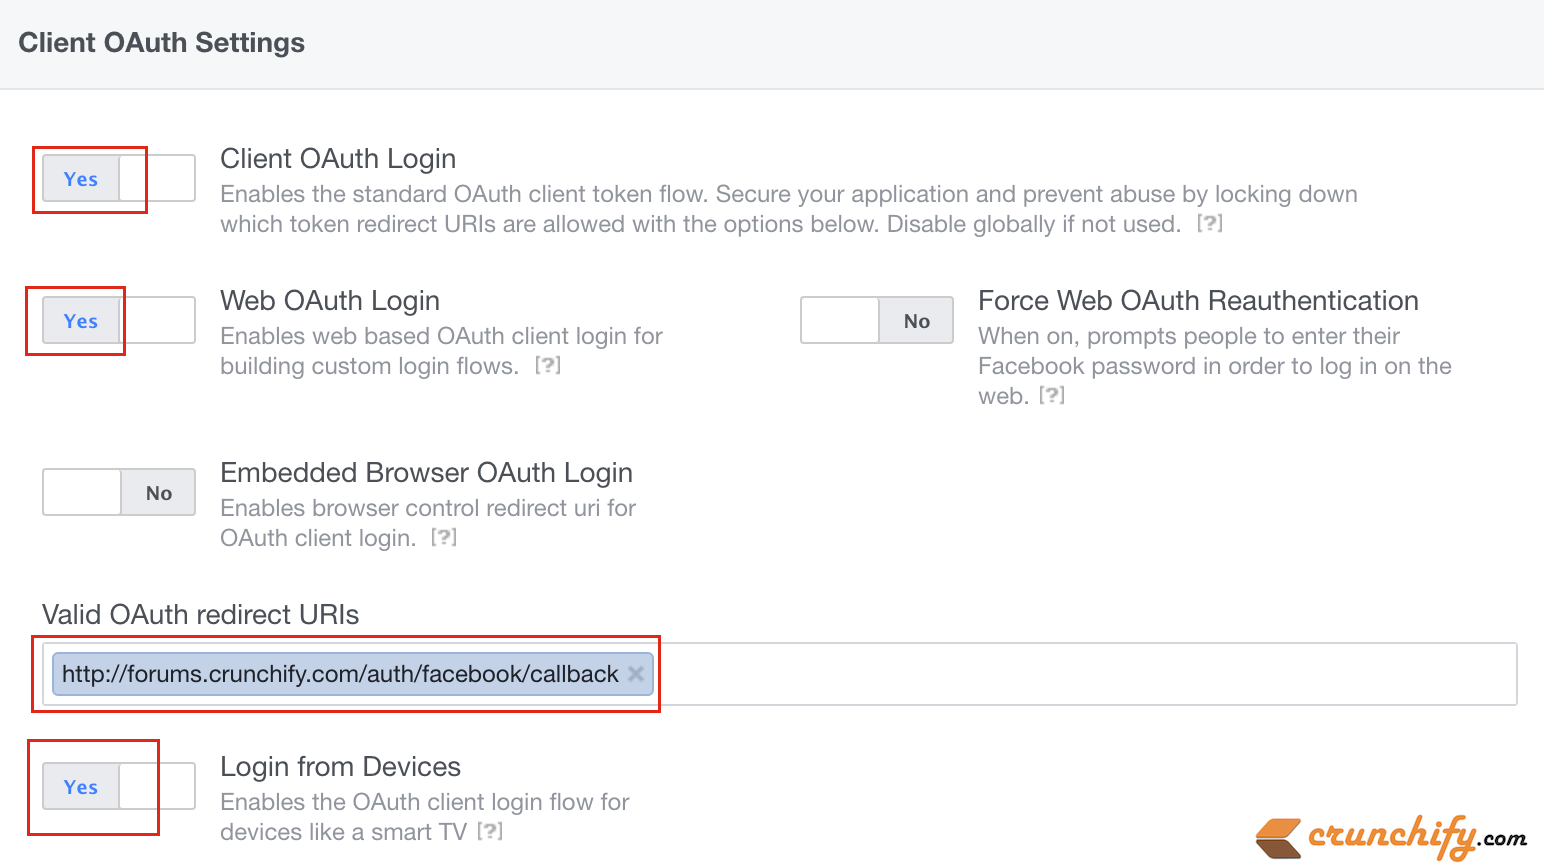 Facebook Client OAuth Settings